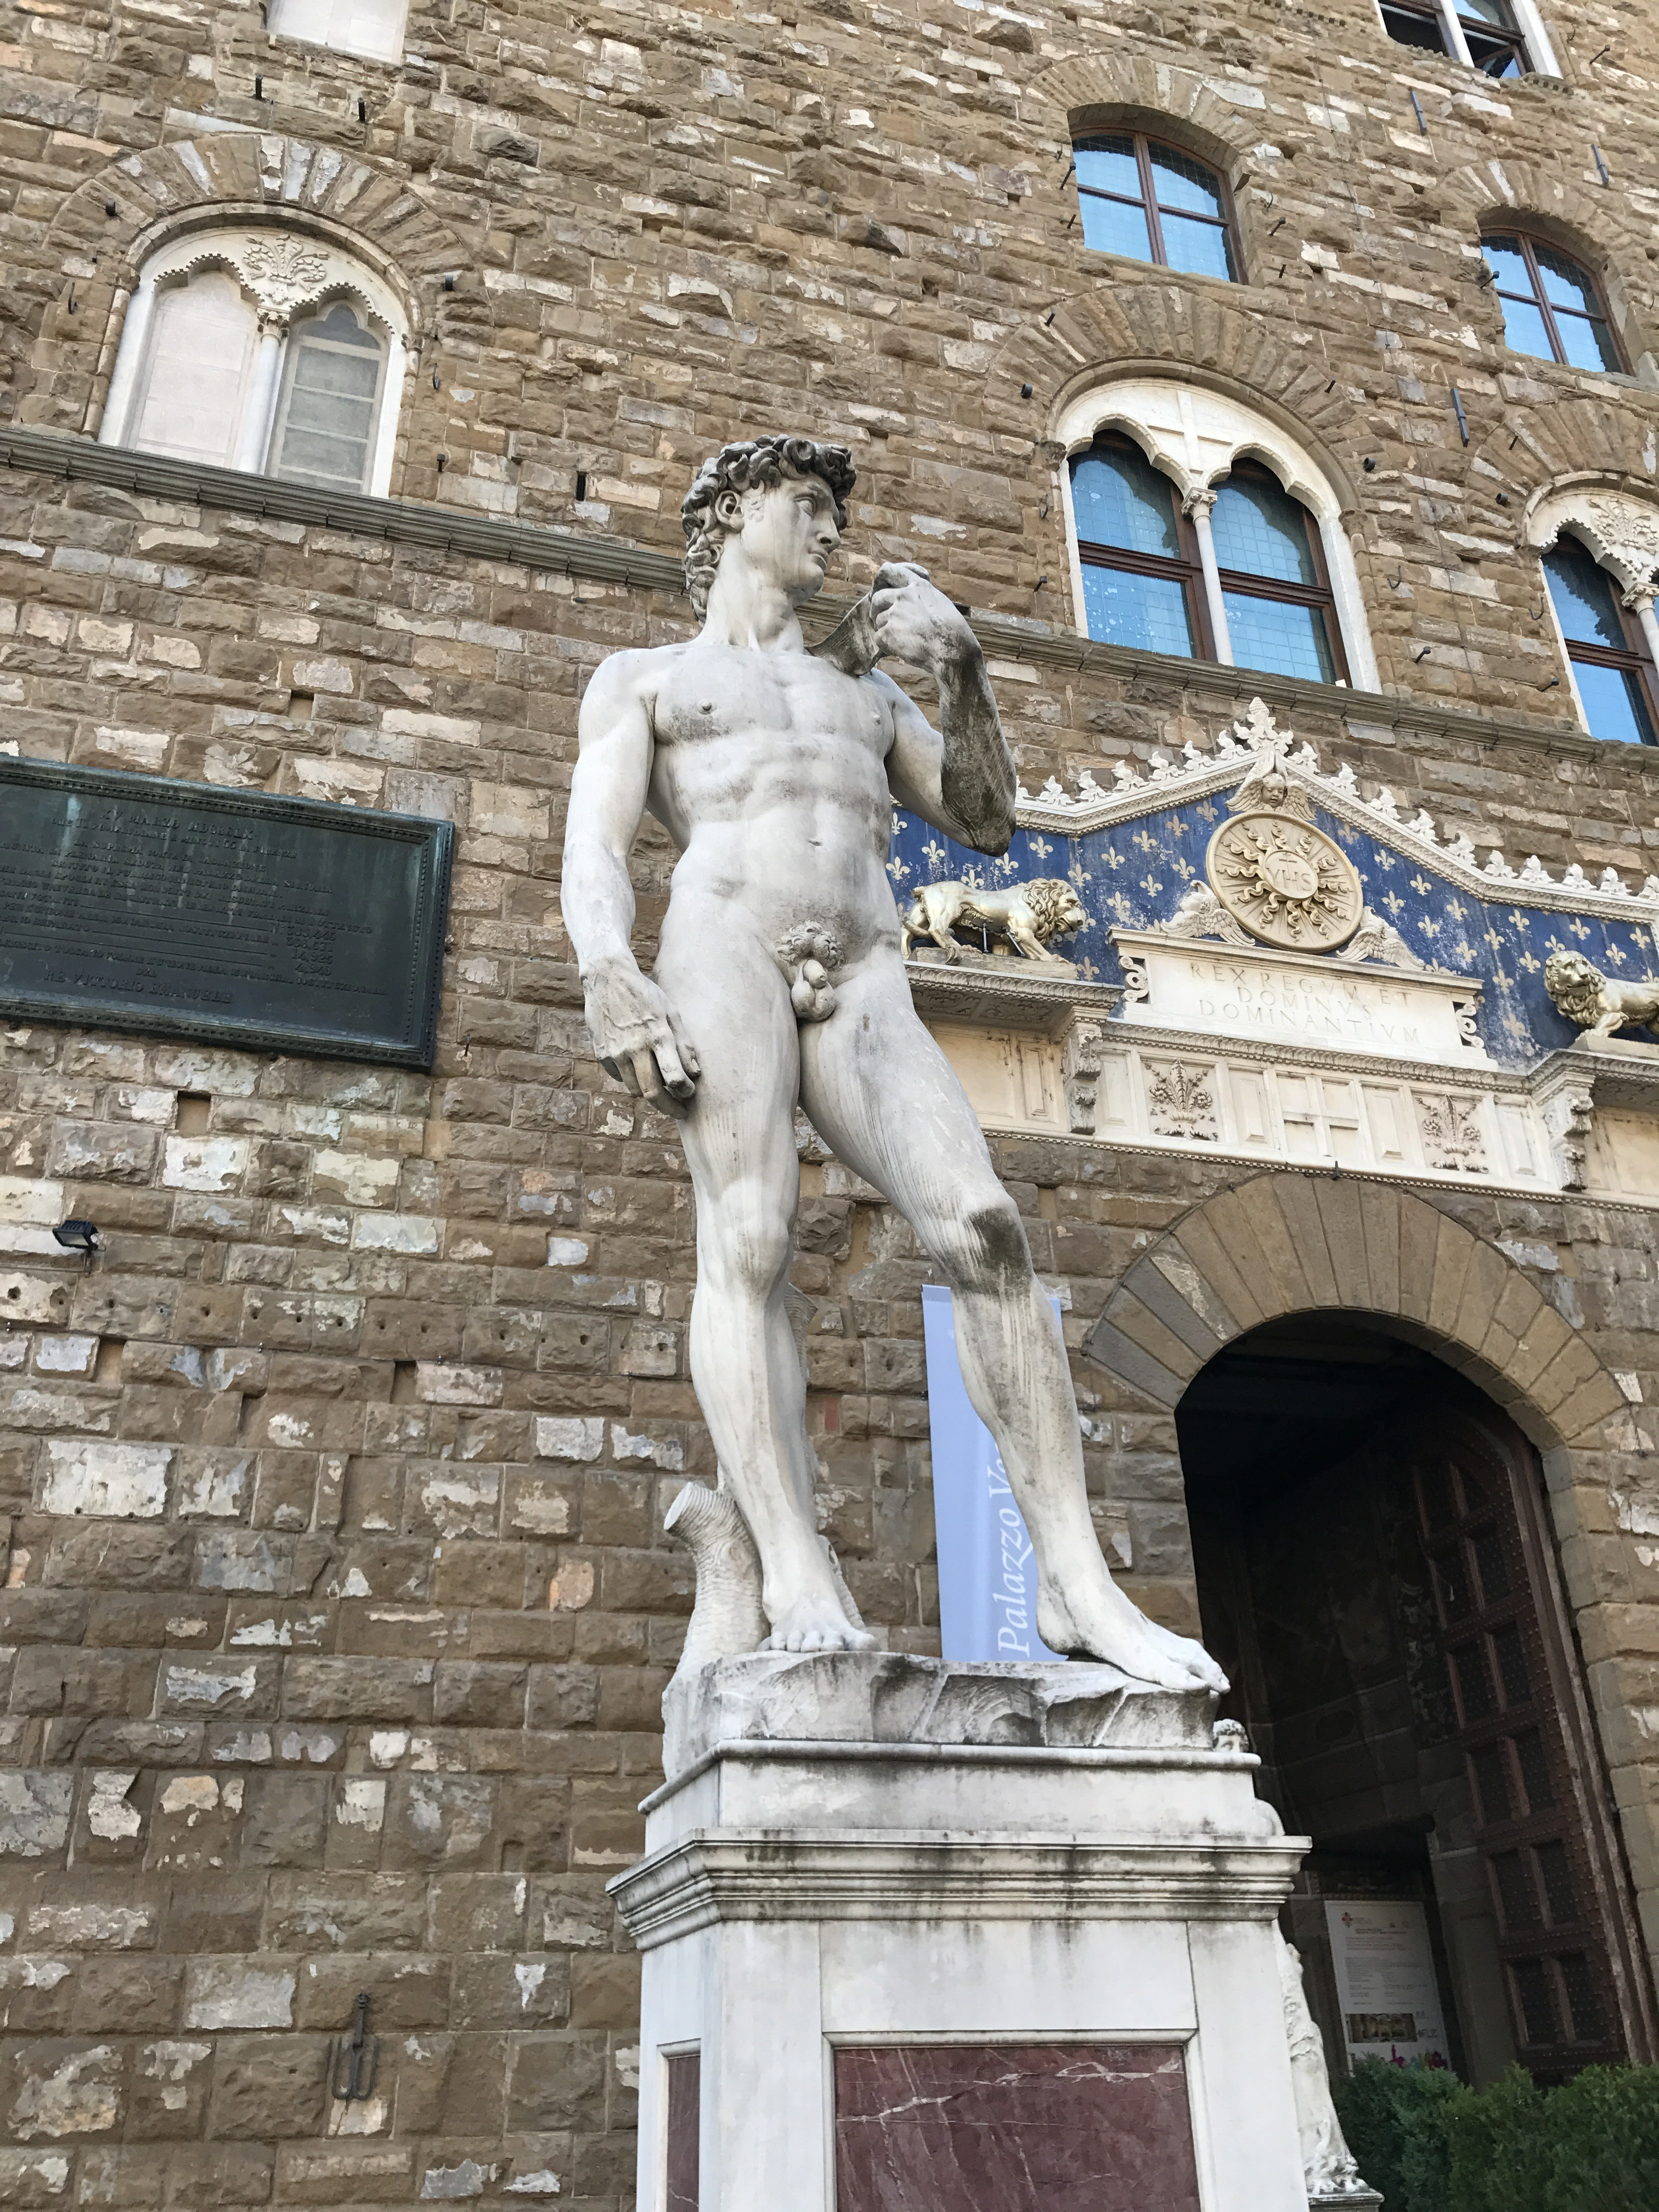 I finally get to meet David!!!  Inspired by David and Goliath! Not to be afraid to take down people bigger, stronger than you are.    Statue by Michelangelo shows him in position to use the sling against Goliath!